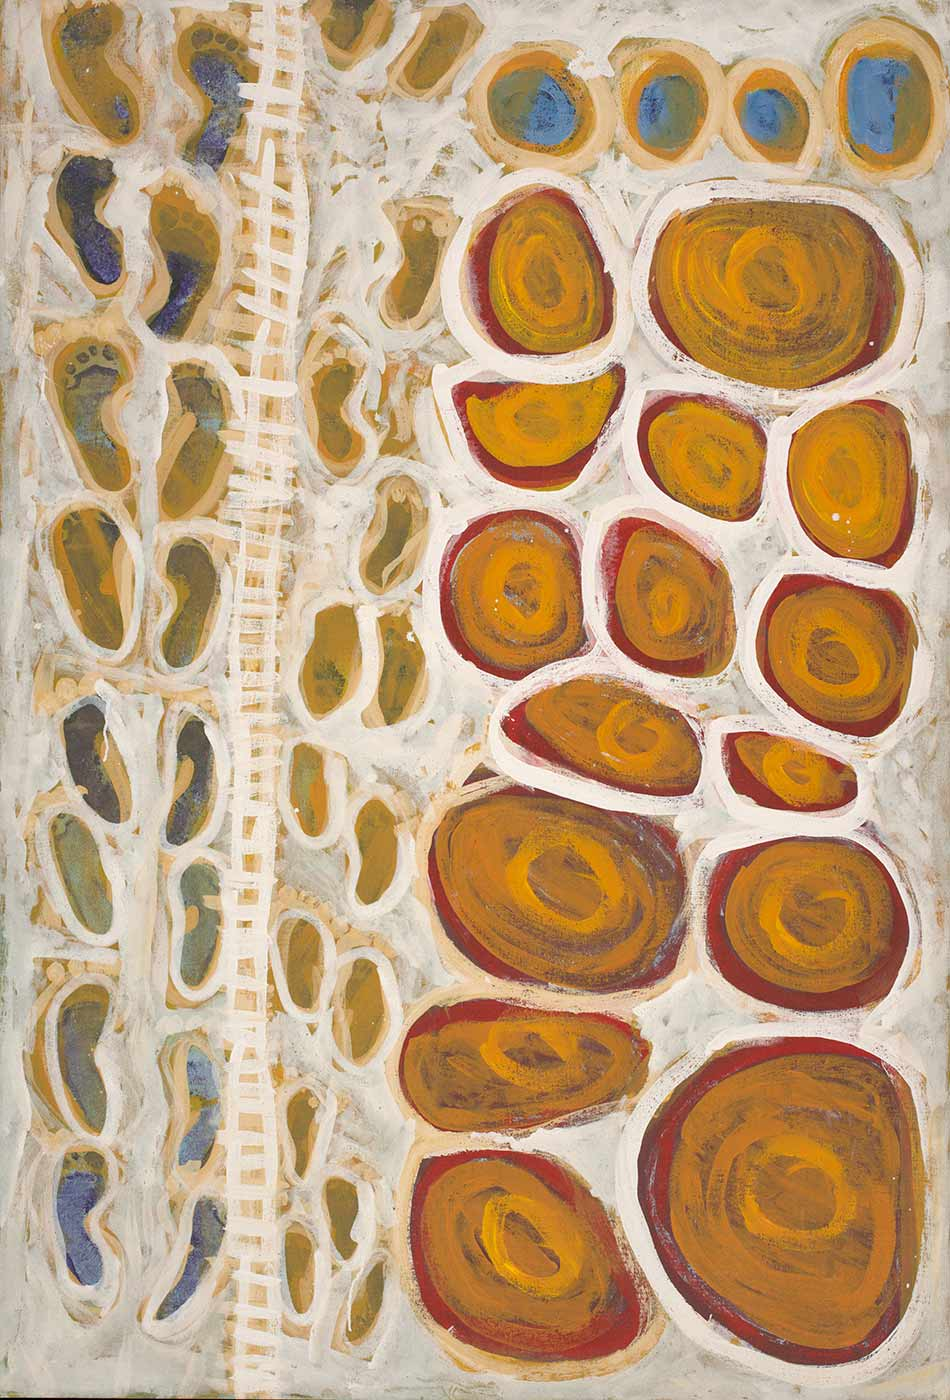 An acrylic painting featuring 15 orange and red coloured concentric circular shapes at the top half of the painting. There are four blue circles on the left hand side of the top of the painting. Below the circles is a row of foot prints with a white cross hatch design that looks like a fence below them and then more foot prints below that. The background is painted white and there is a white outline around each feature.